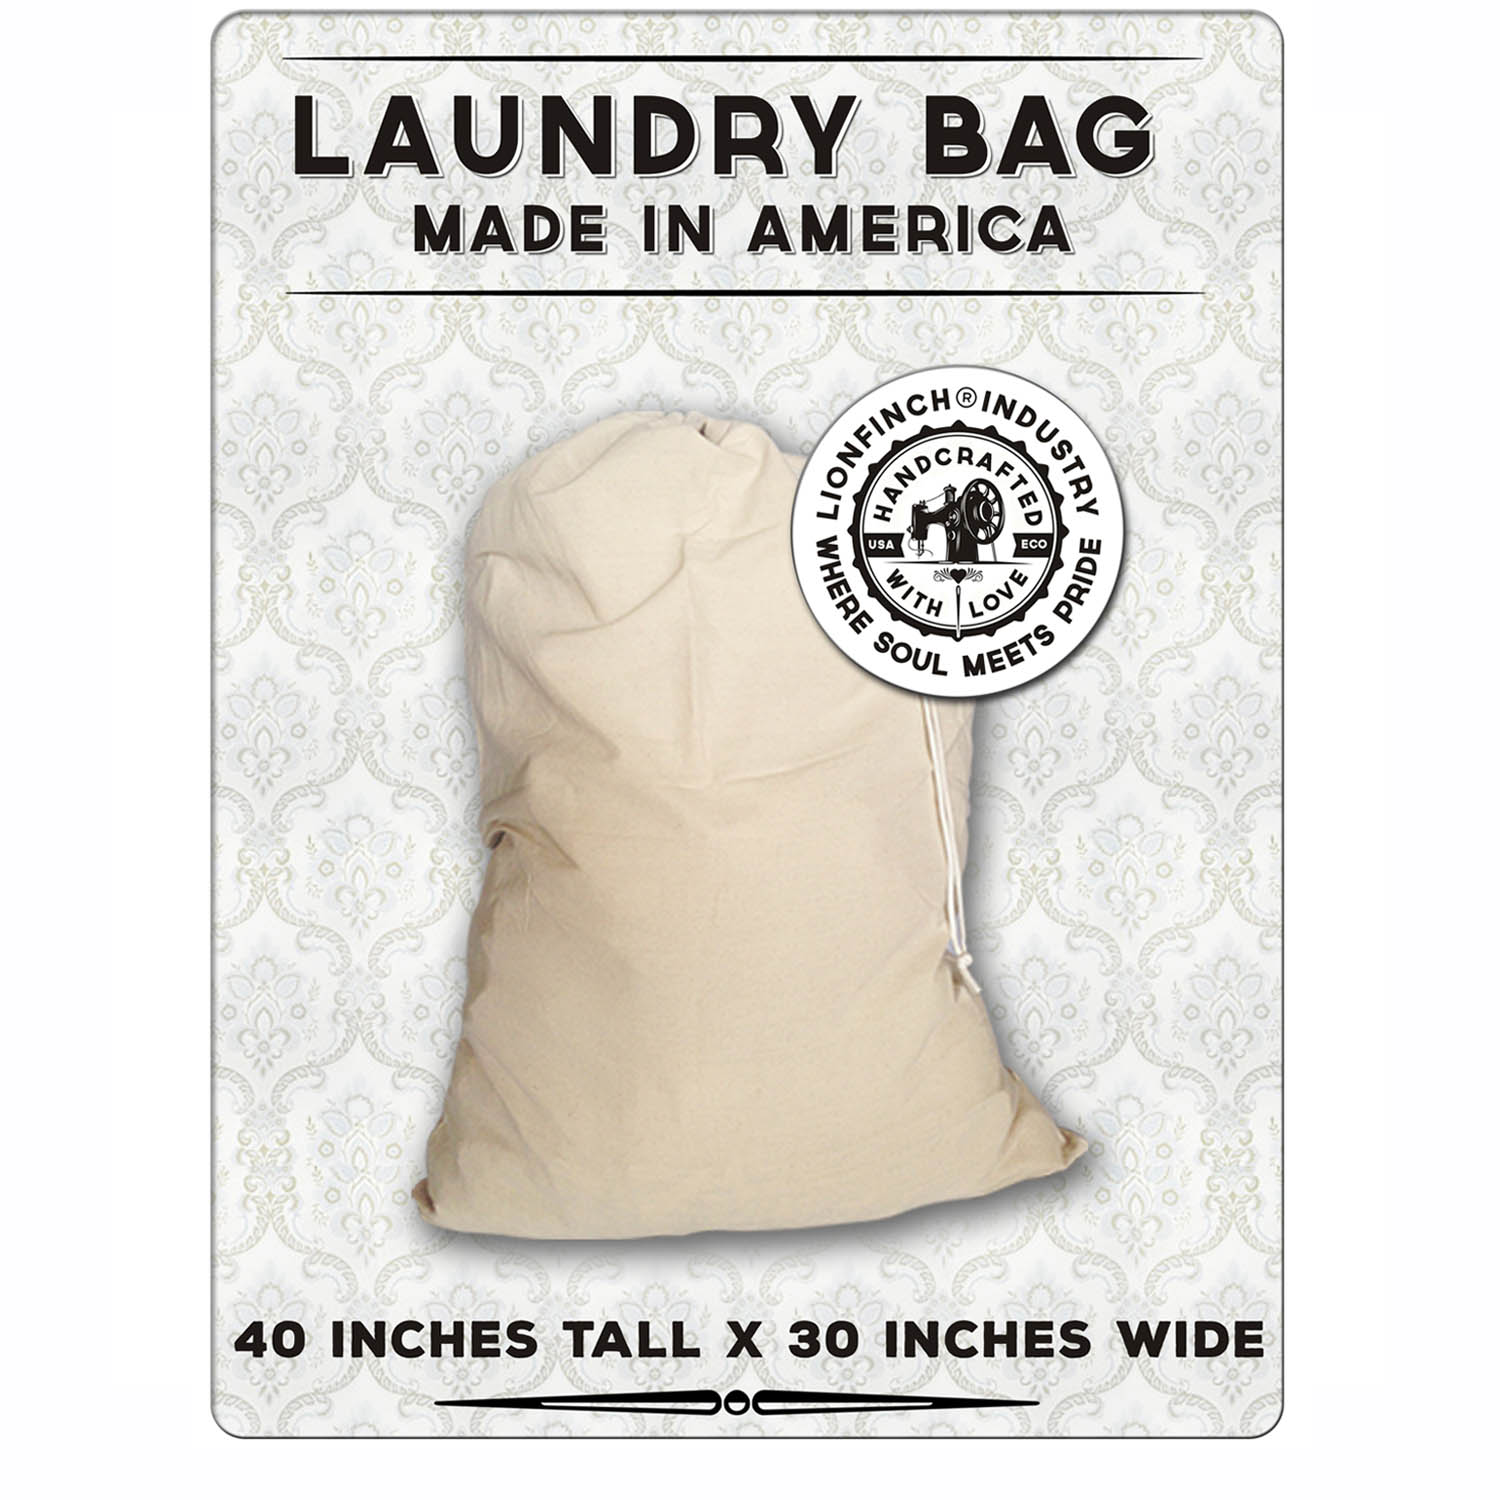 Lionfinch Laundry Bag- Front Image.jpg